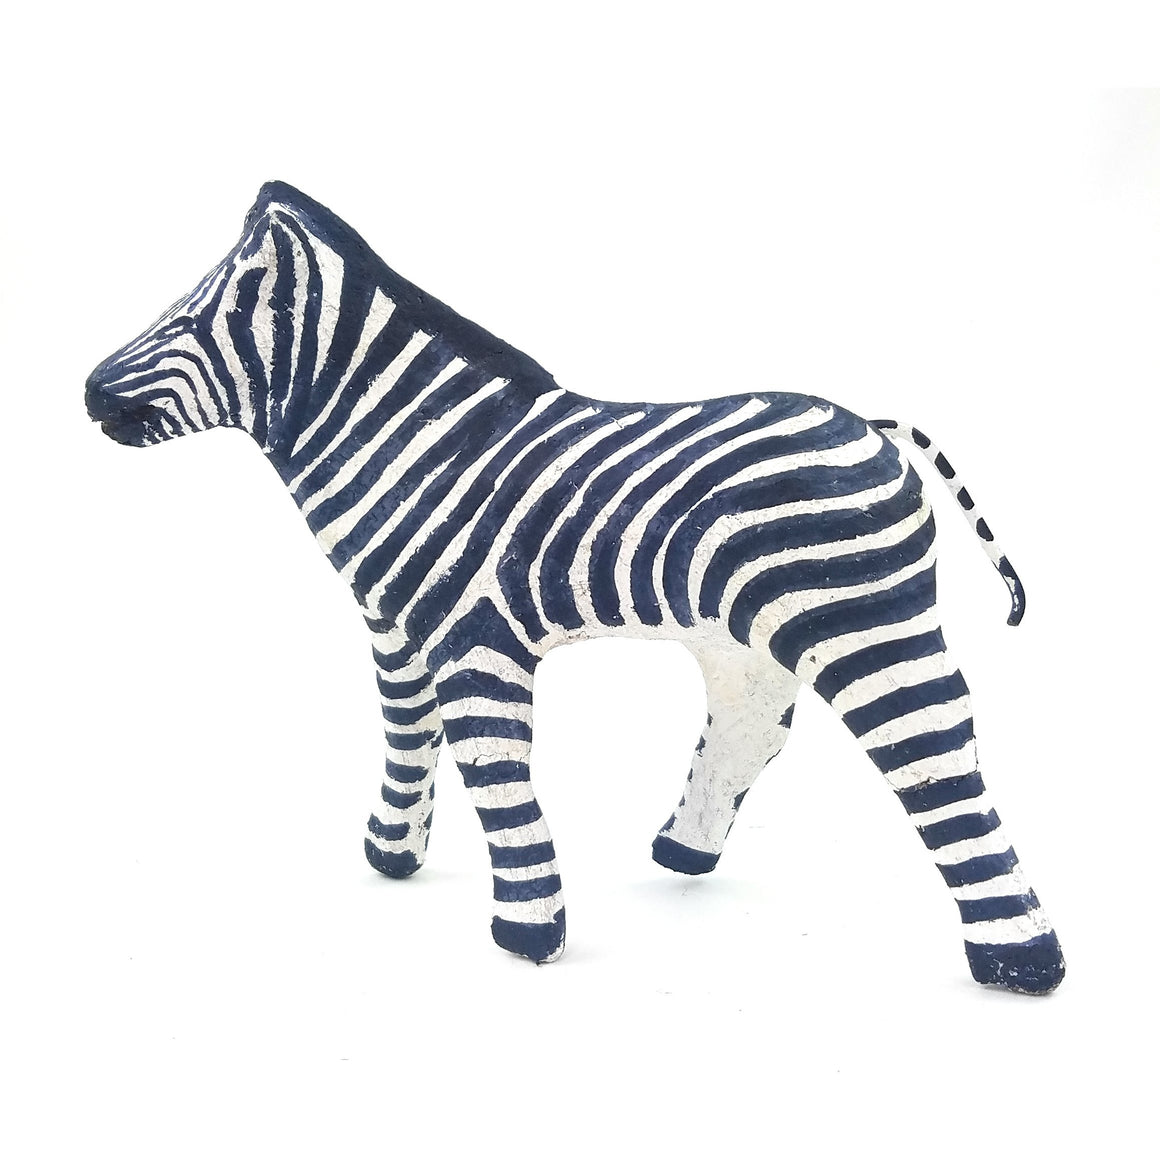 Zebra Sculpture Handmade In Zimbabwe